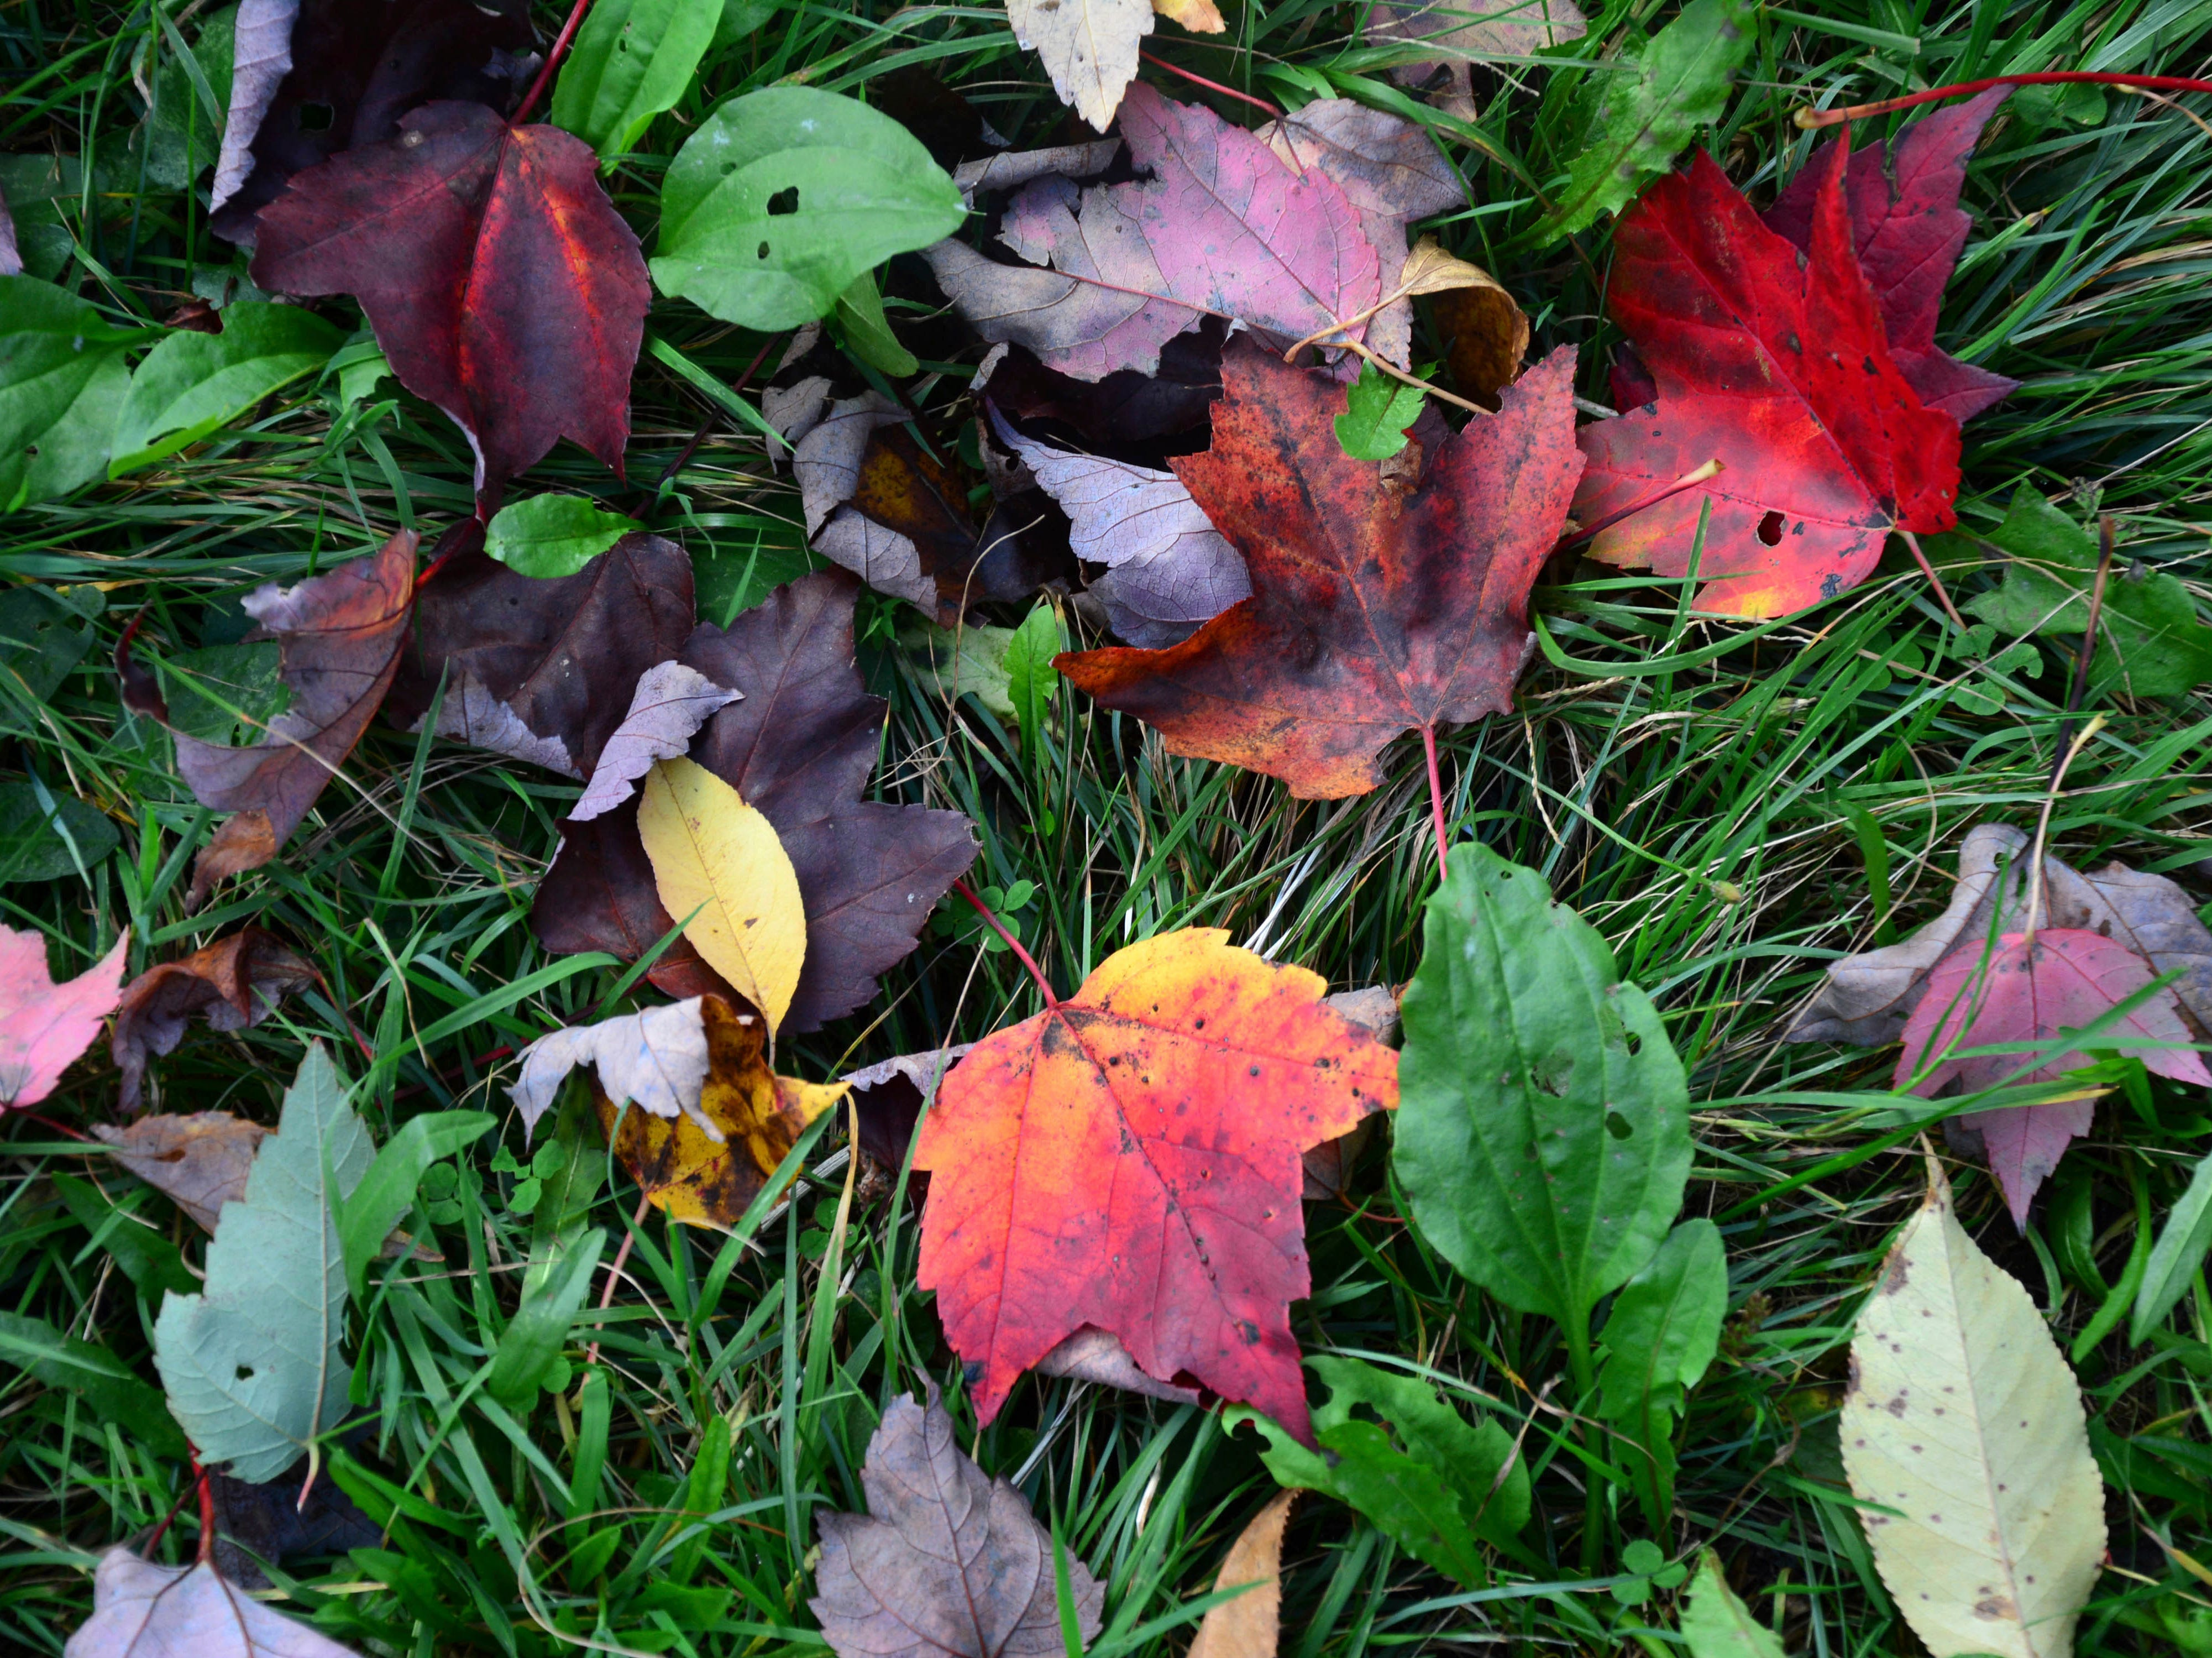 An assortment of autumn leaves lay fallen on the ground at the Savoy State Forest in Florida, Mass., Wednesday, October 10, 2018. The warm temperatures have delayed the fall foliage but finally the colors are emerging, if not somewhat muted and the region has not received its first frost of the season as of yet, so the grass is still green.